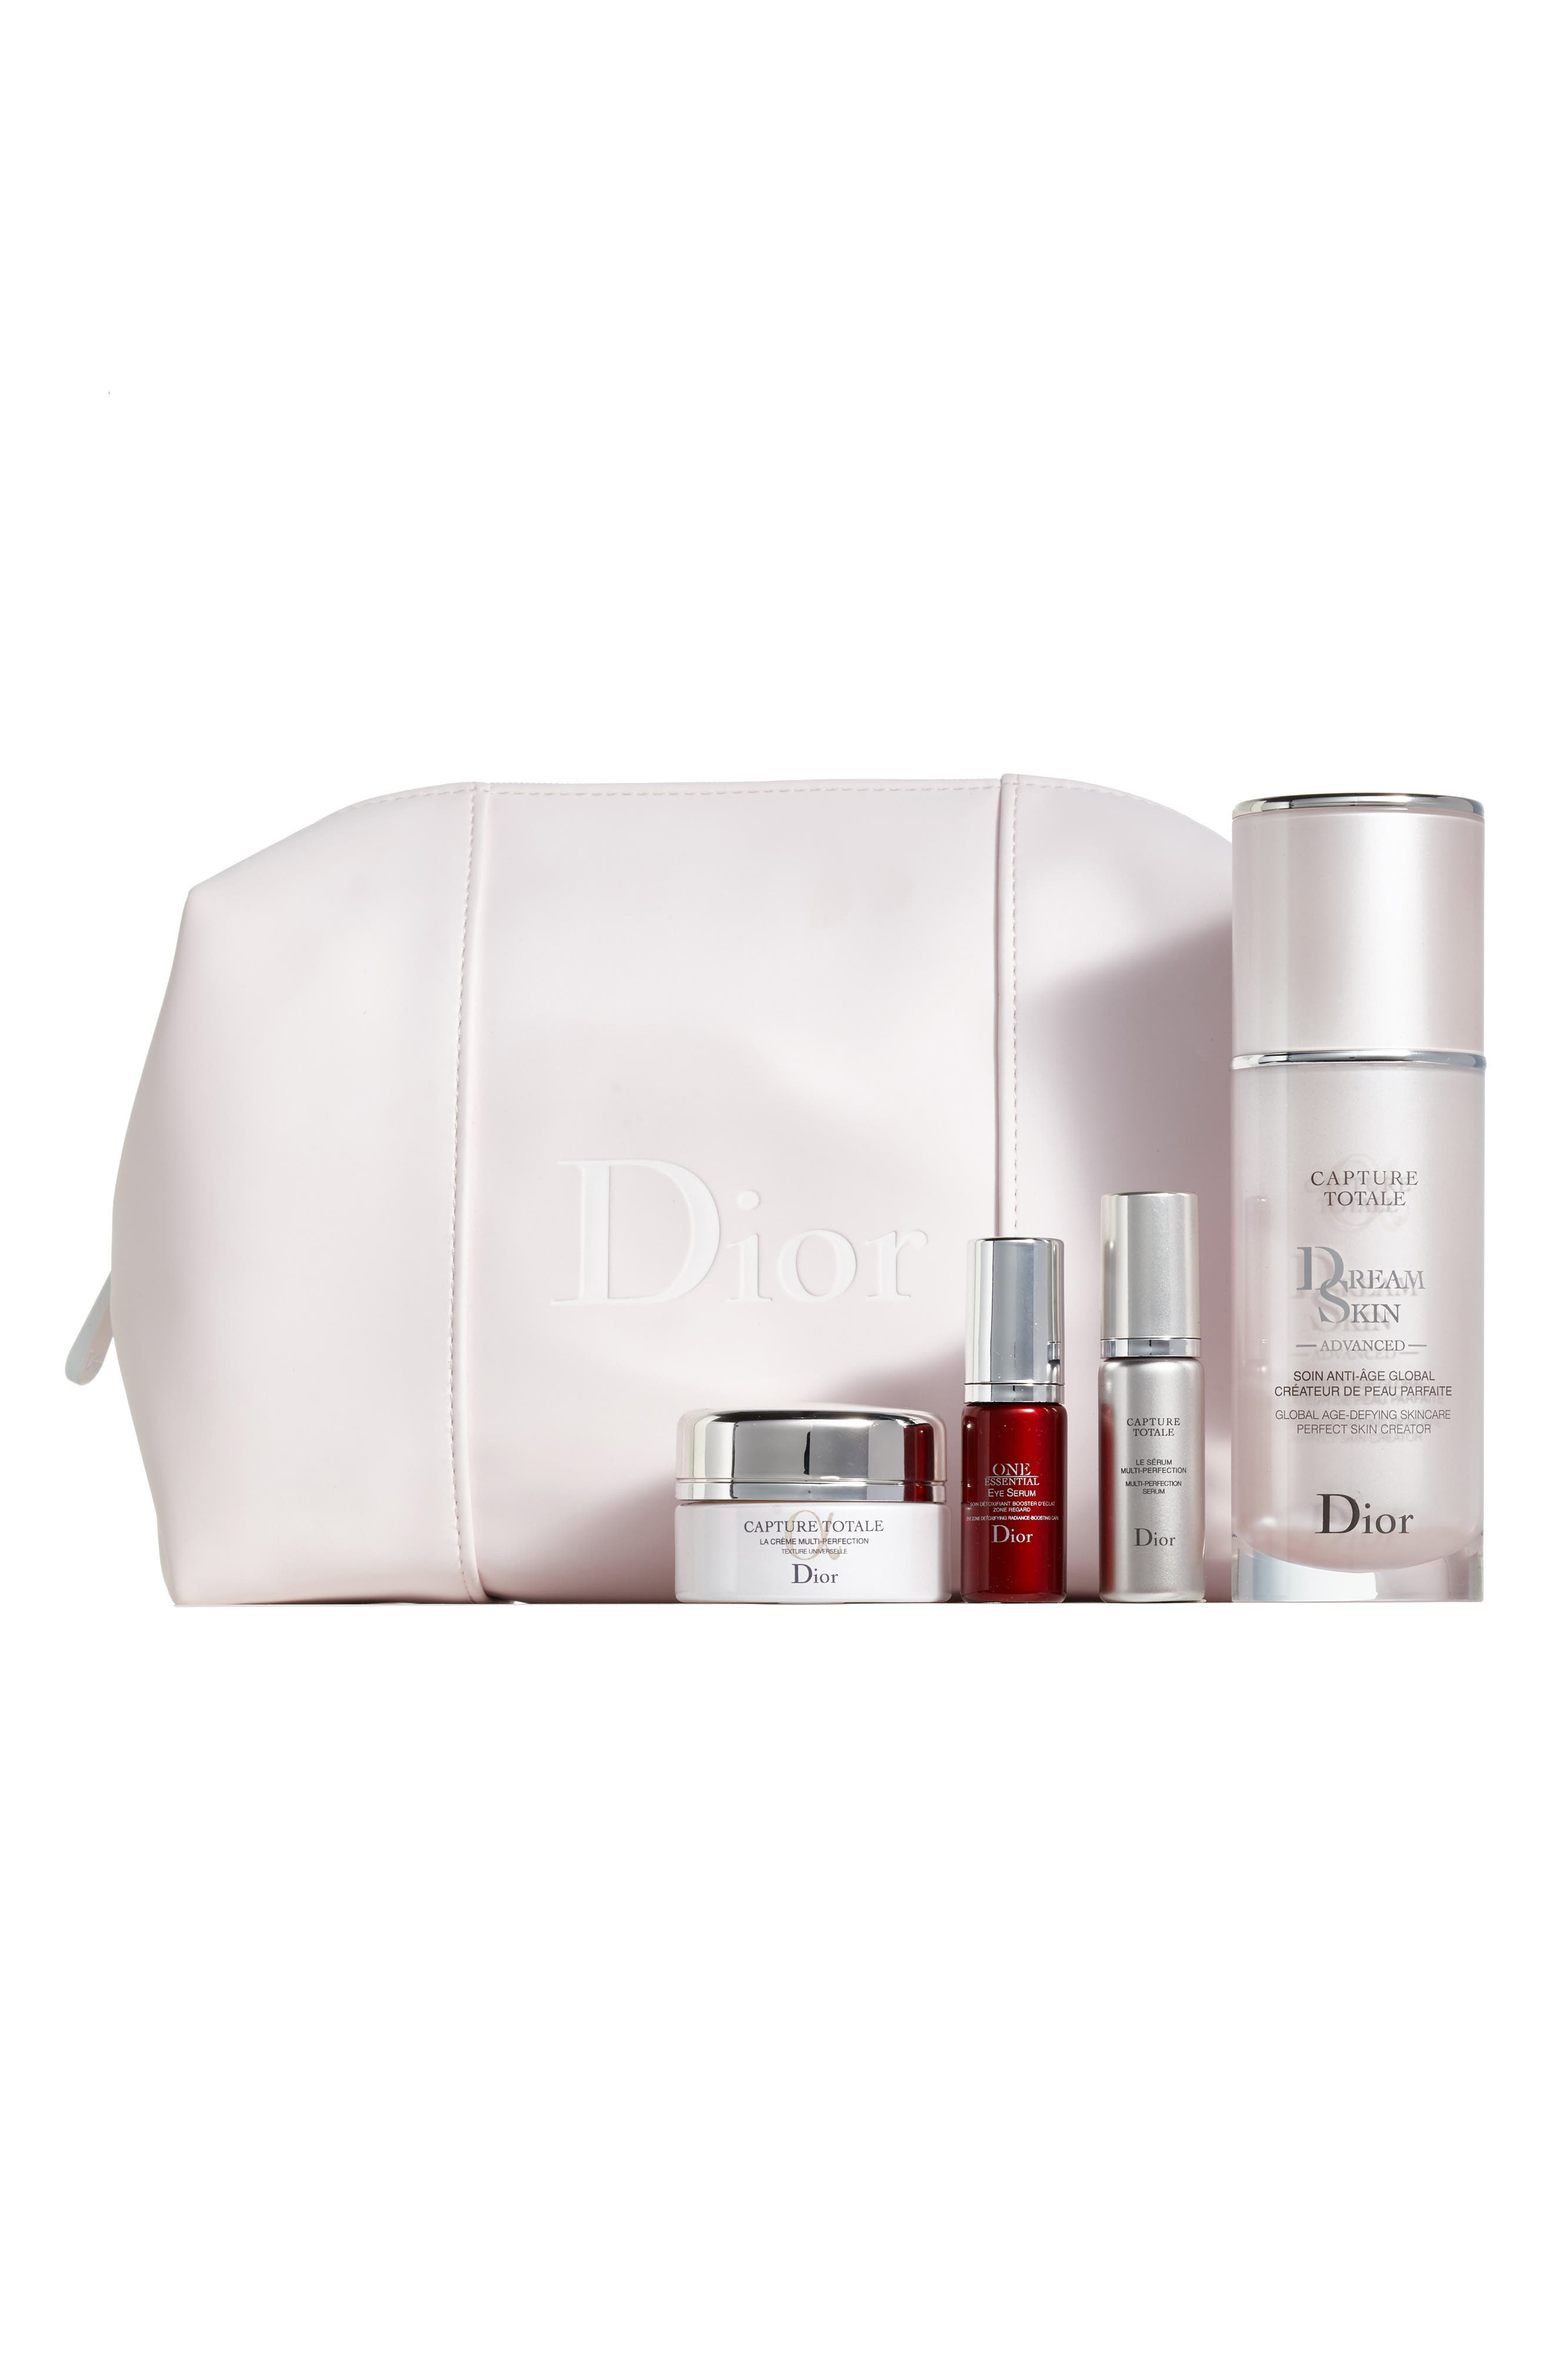 Dior DreamSkin Advanced Set ($259 Value)